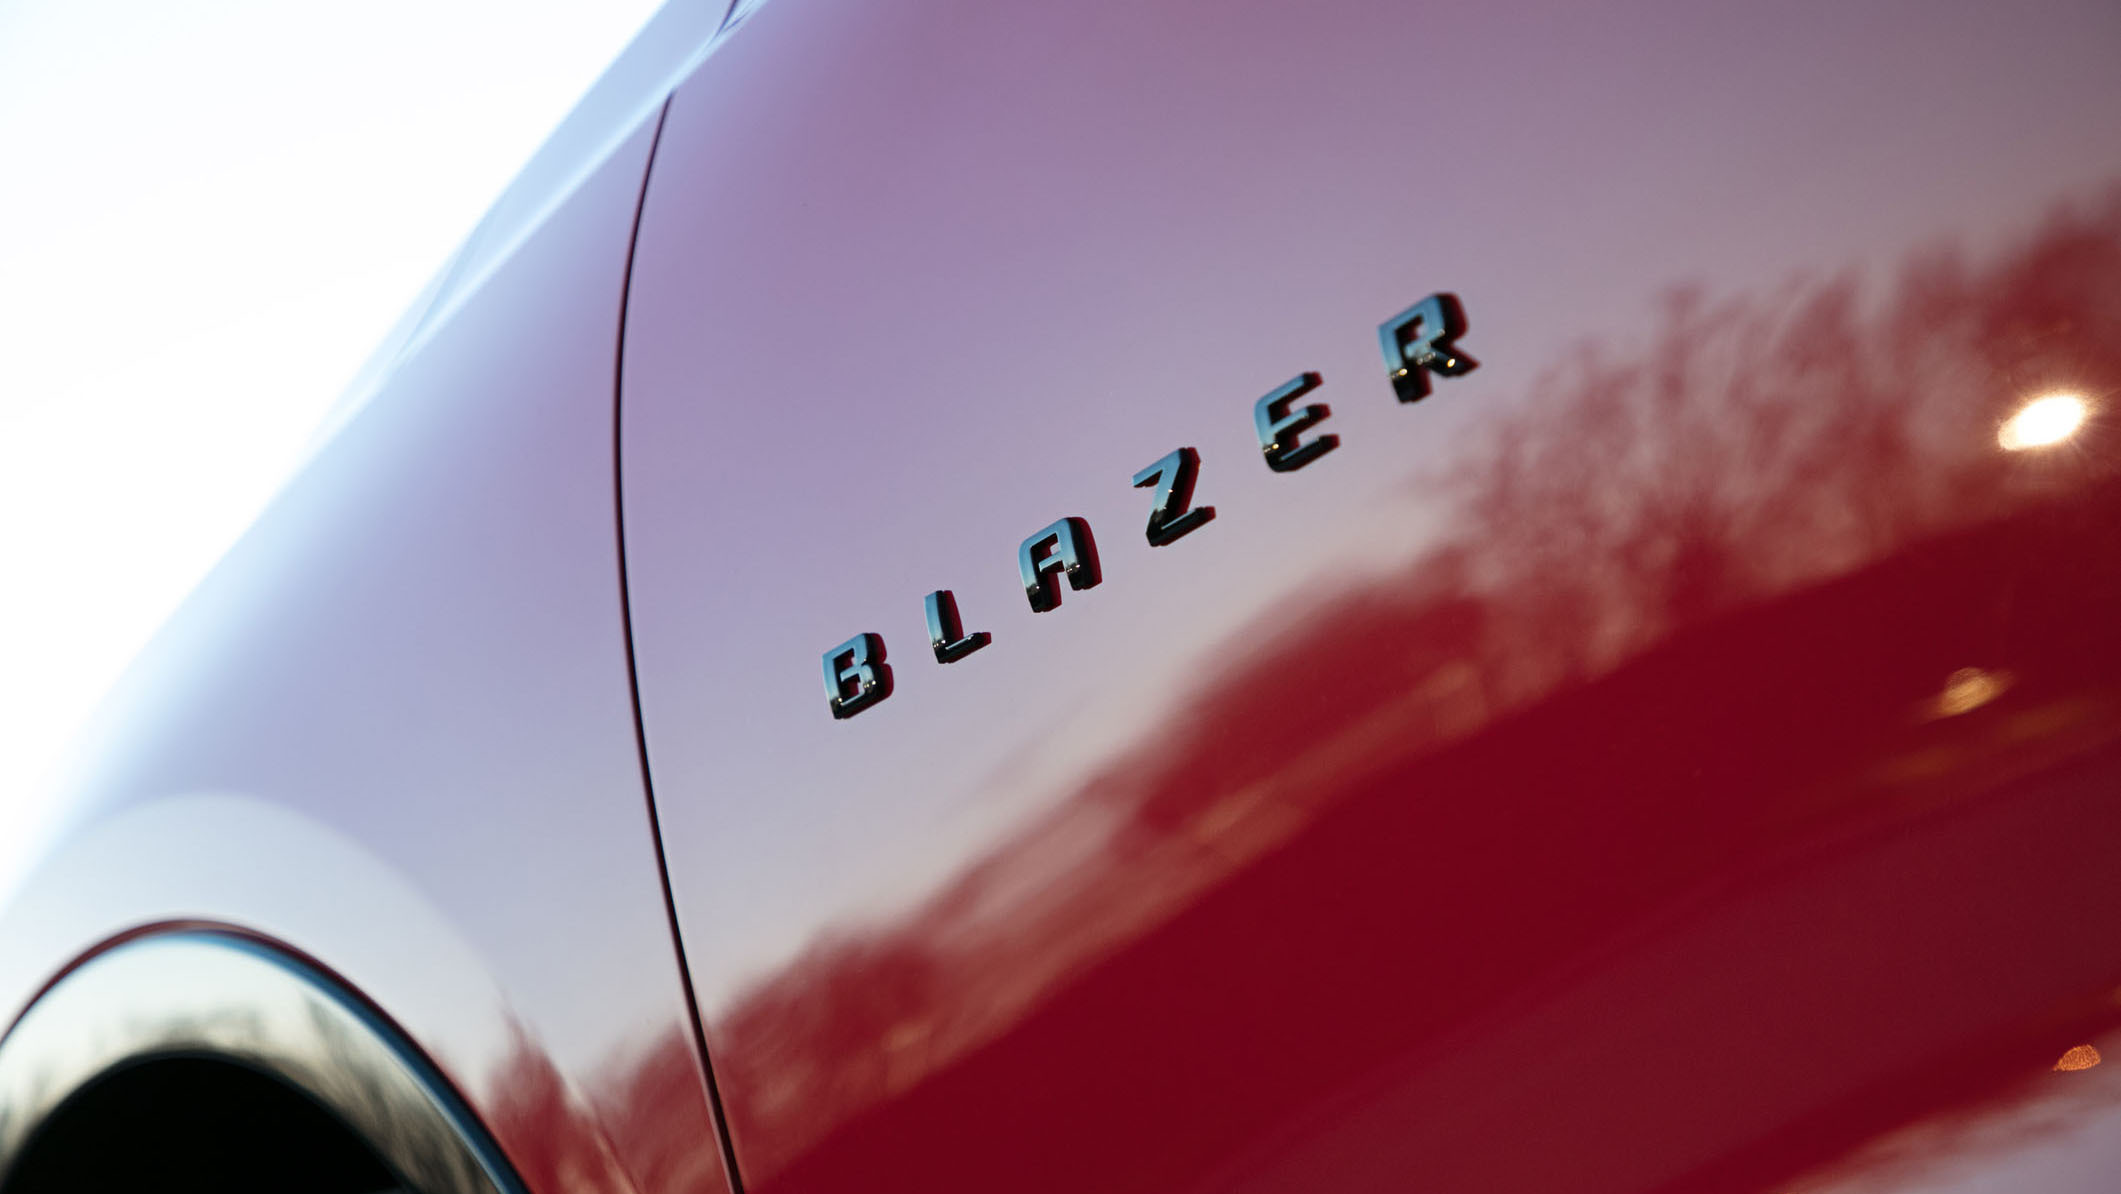 Chevrolet introduces the all-new 2019 Blazer